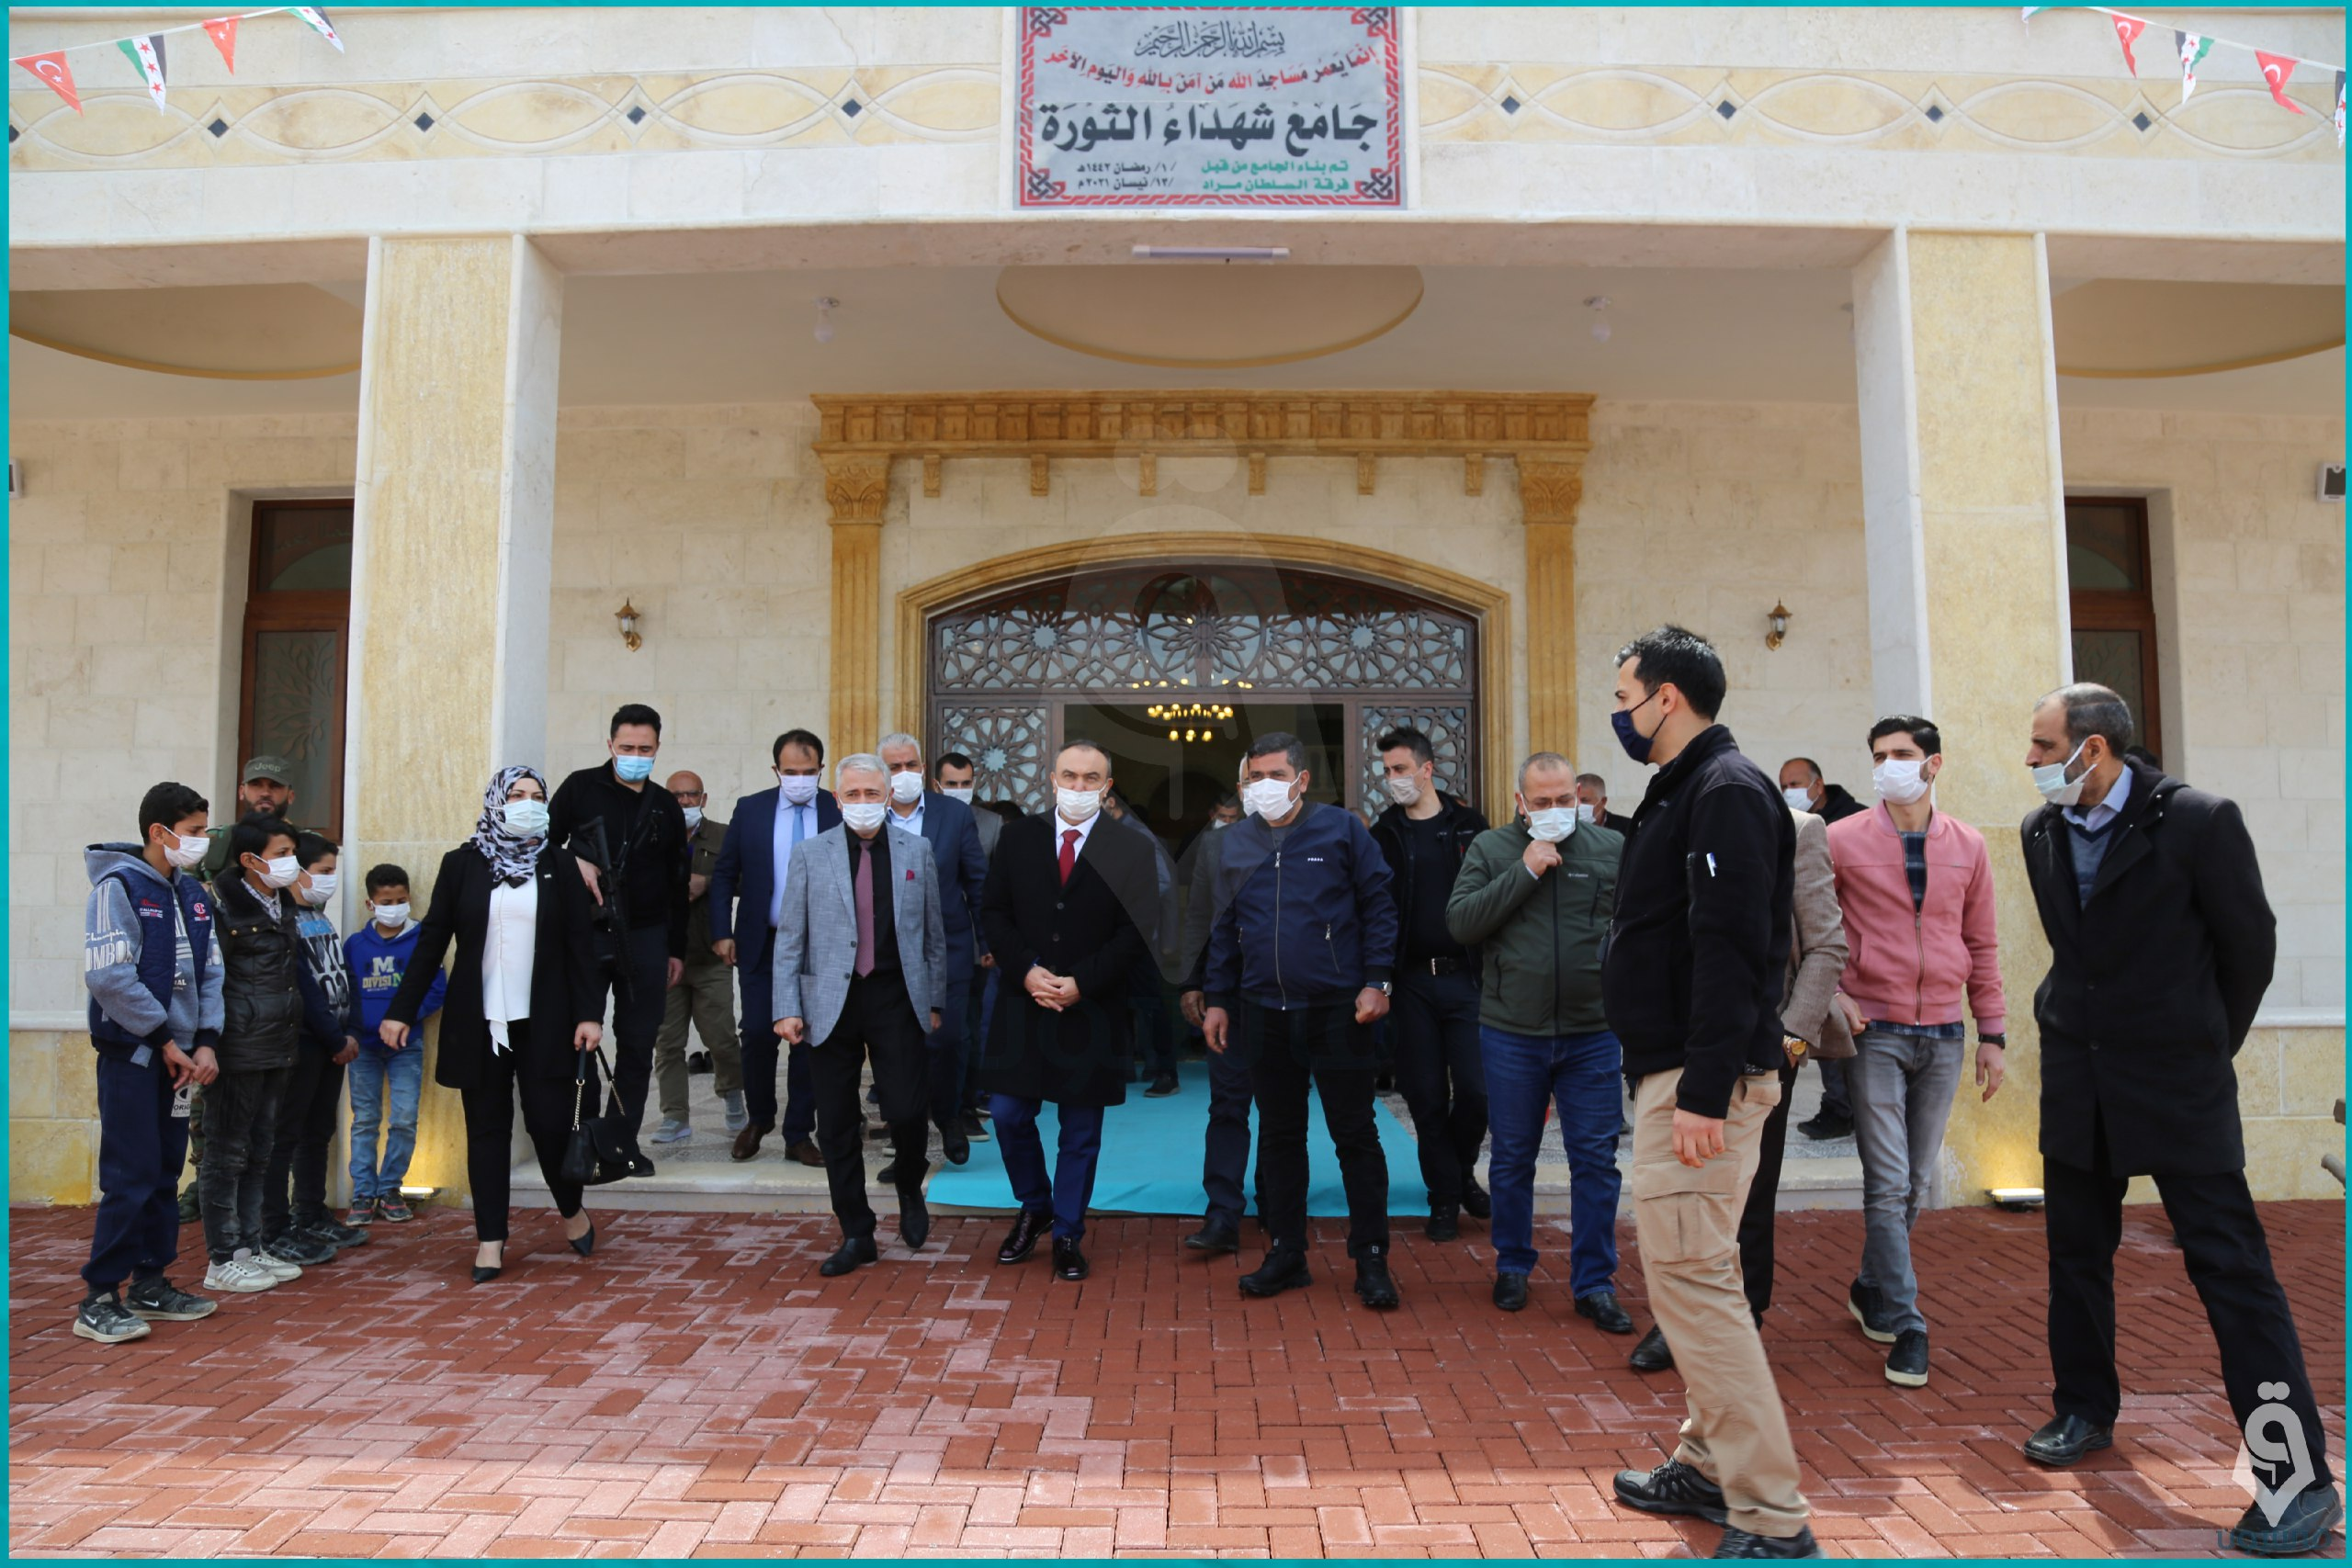 Opening of the Revolution Martyrs' Mosque on the Syrian-Turkish border